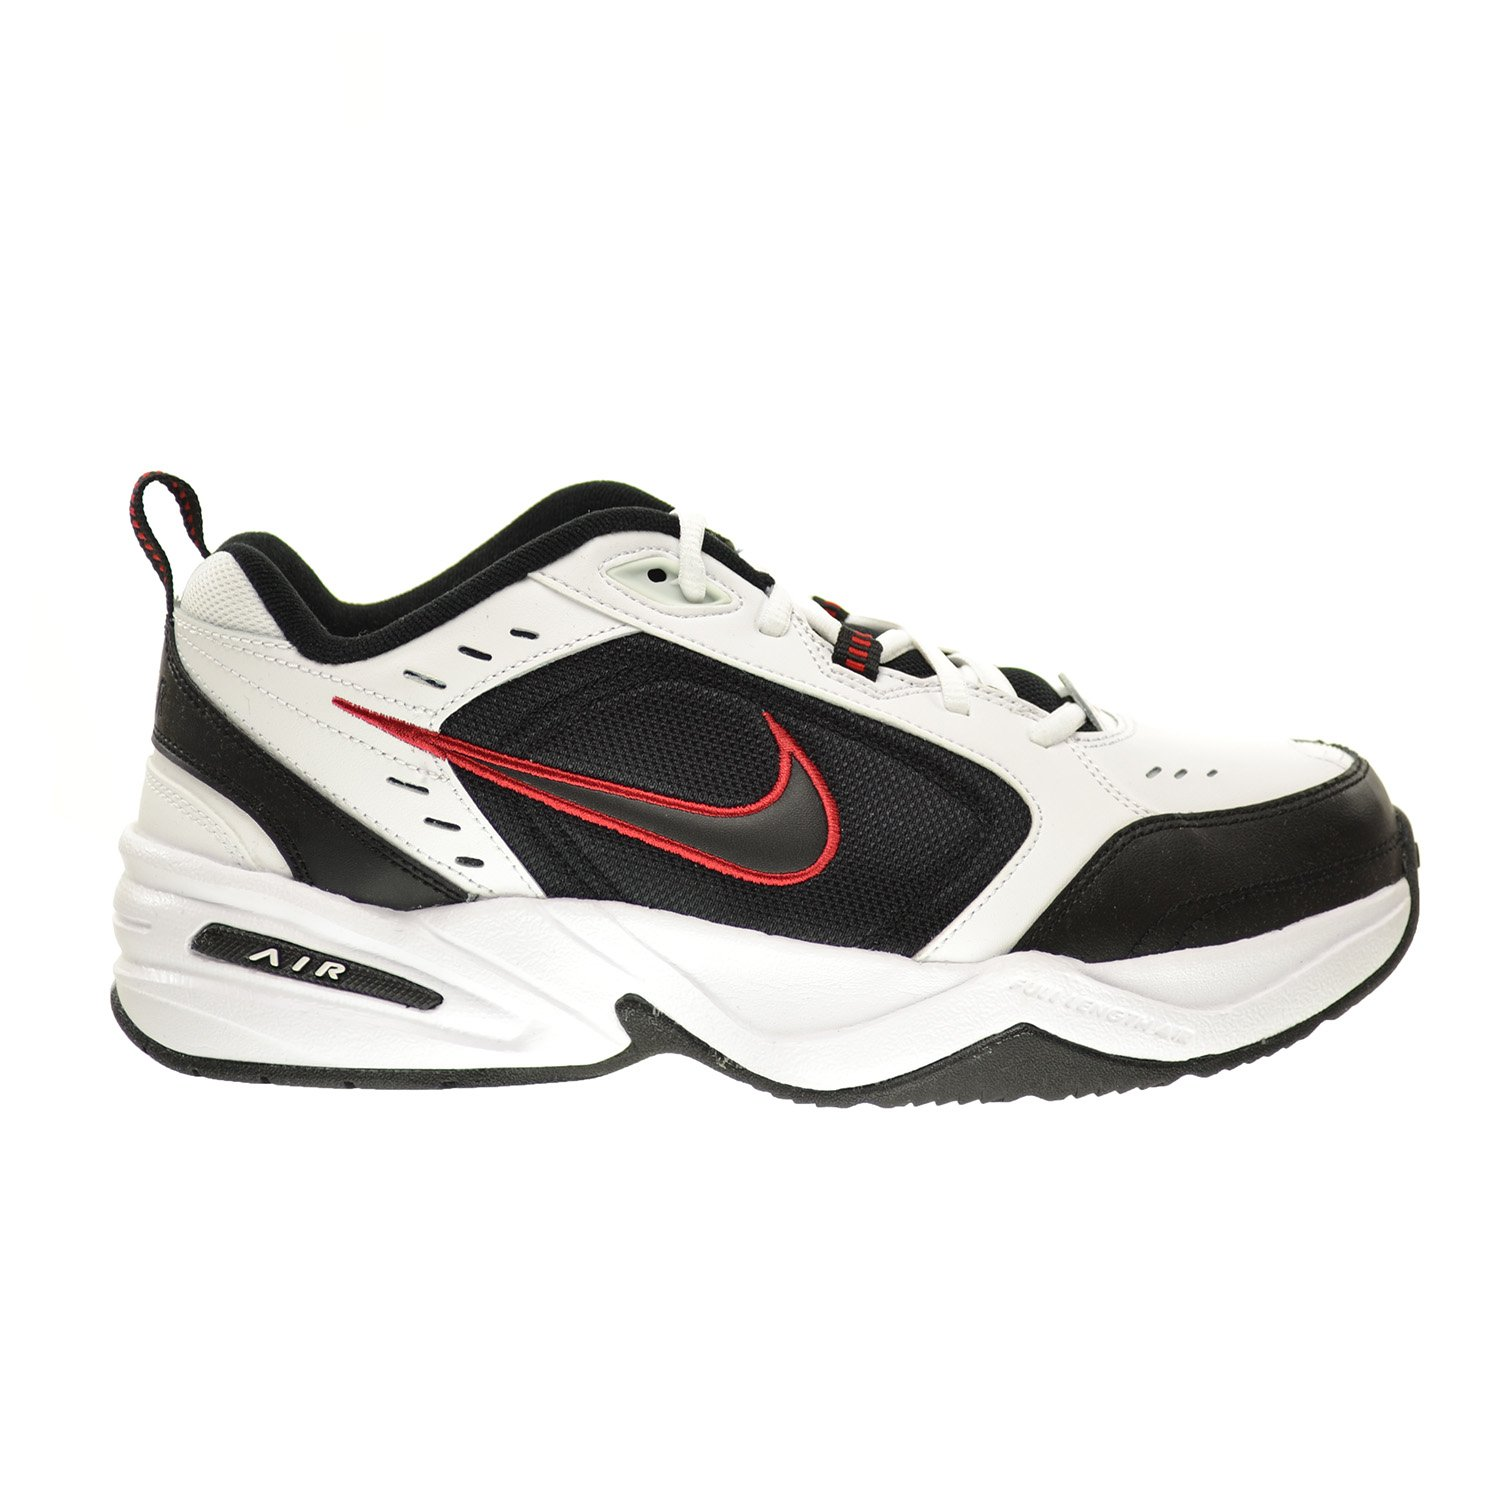 Amazon.com | Nike Air Monarch IV (4E) Extra-Wide Men\u0027s Shoes  White/Black-Varsity Red 416355-101 (10 4E US) | Fitness \u0026 Cross-Training